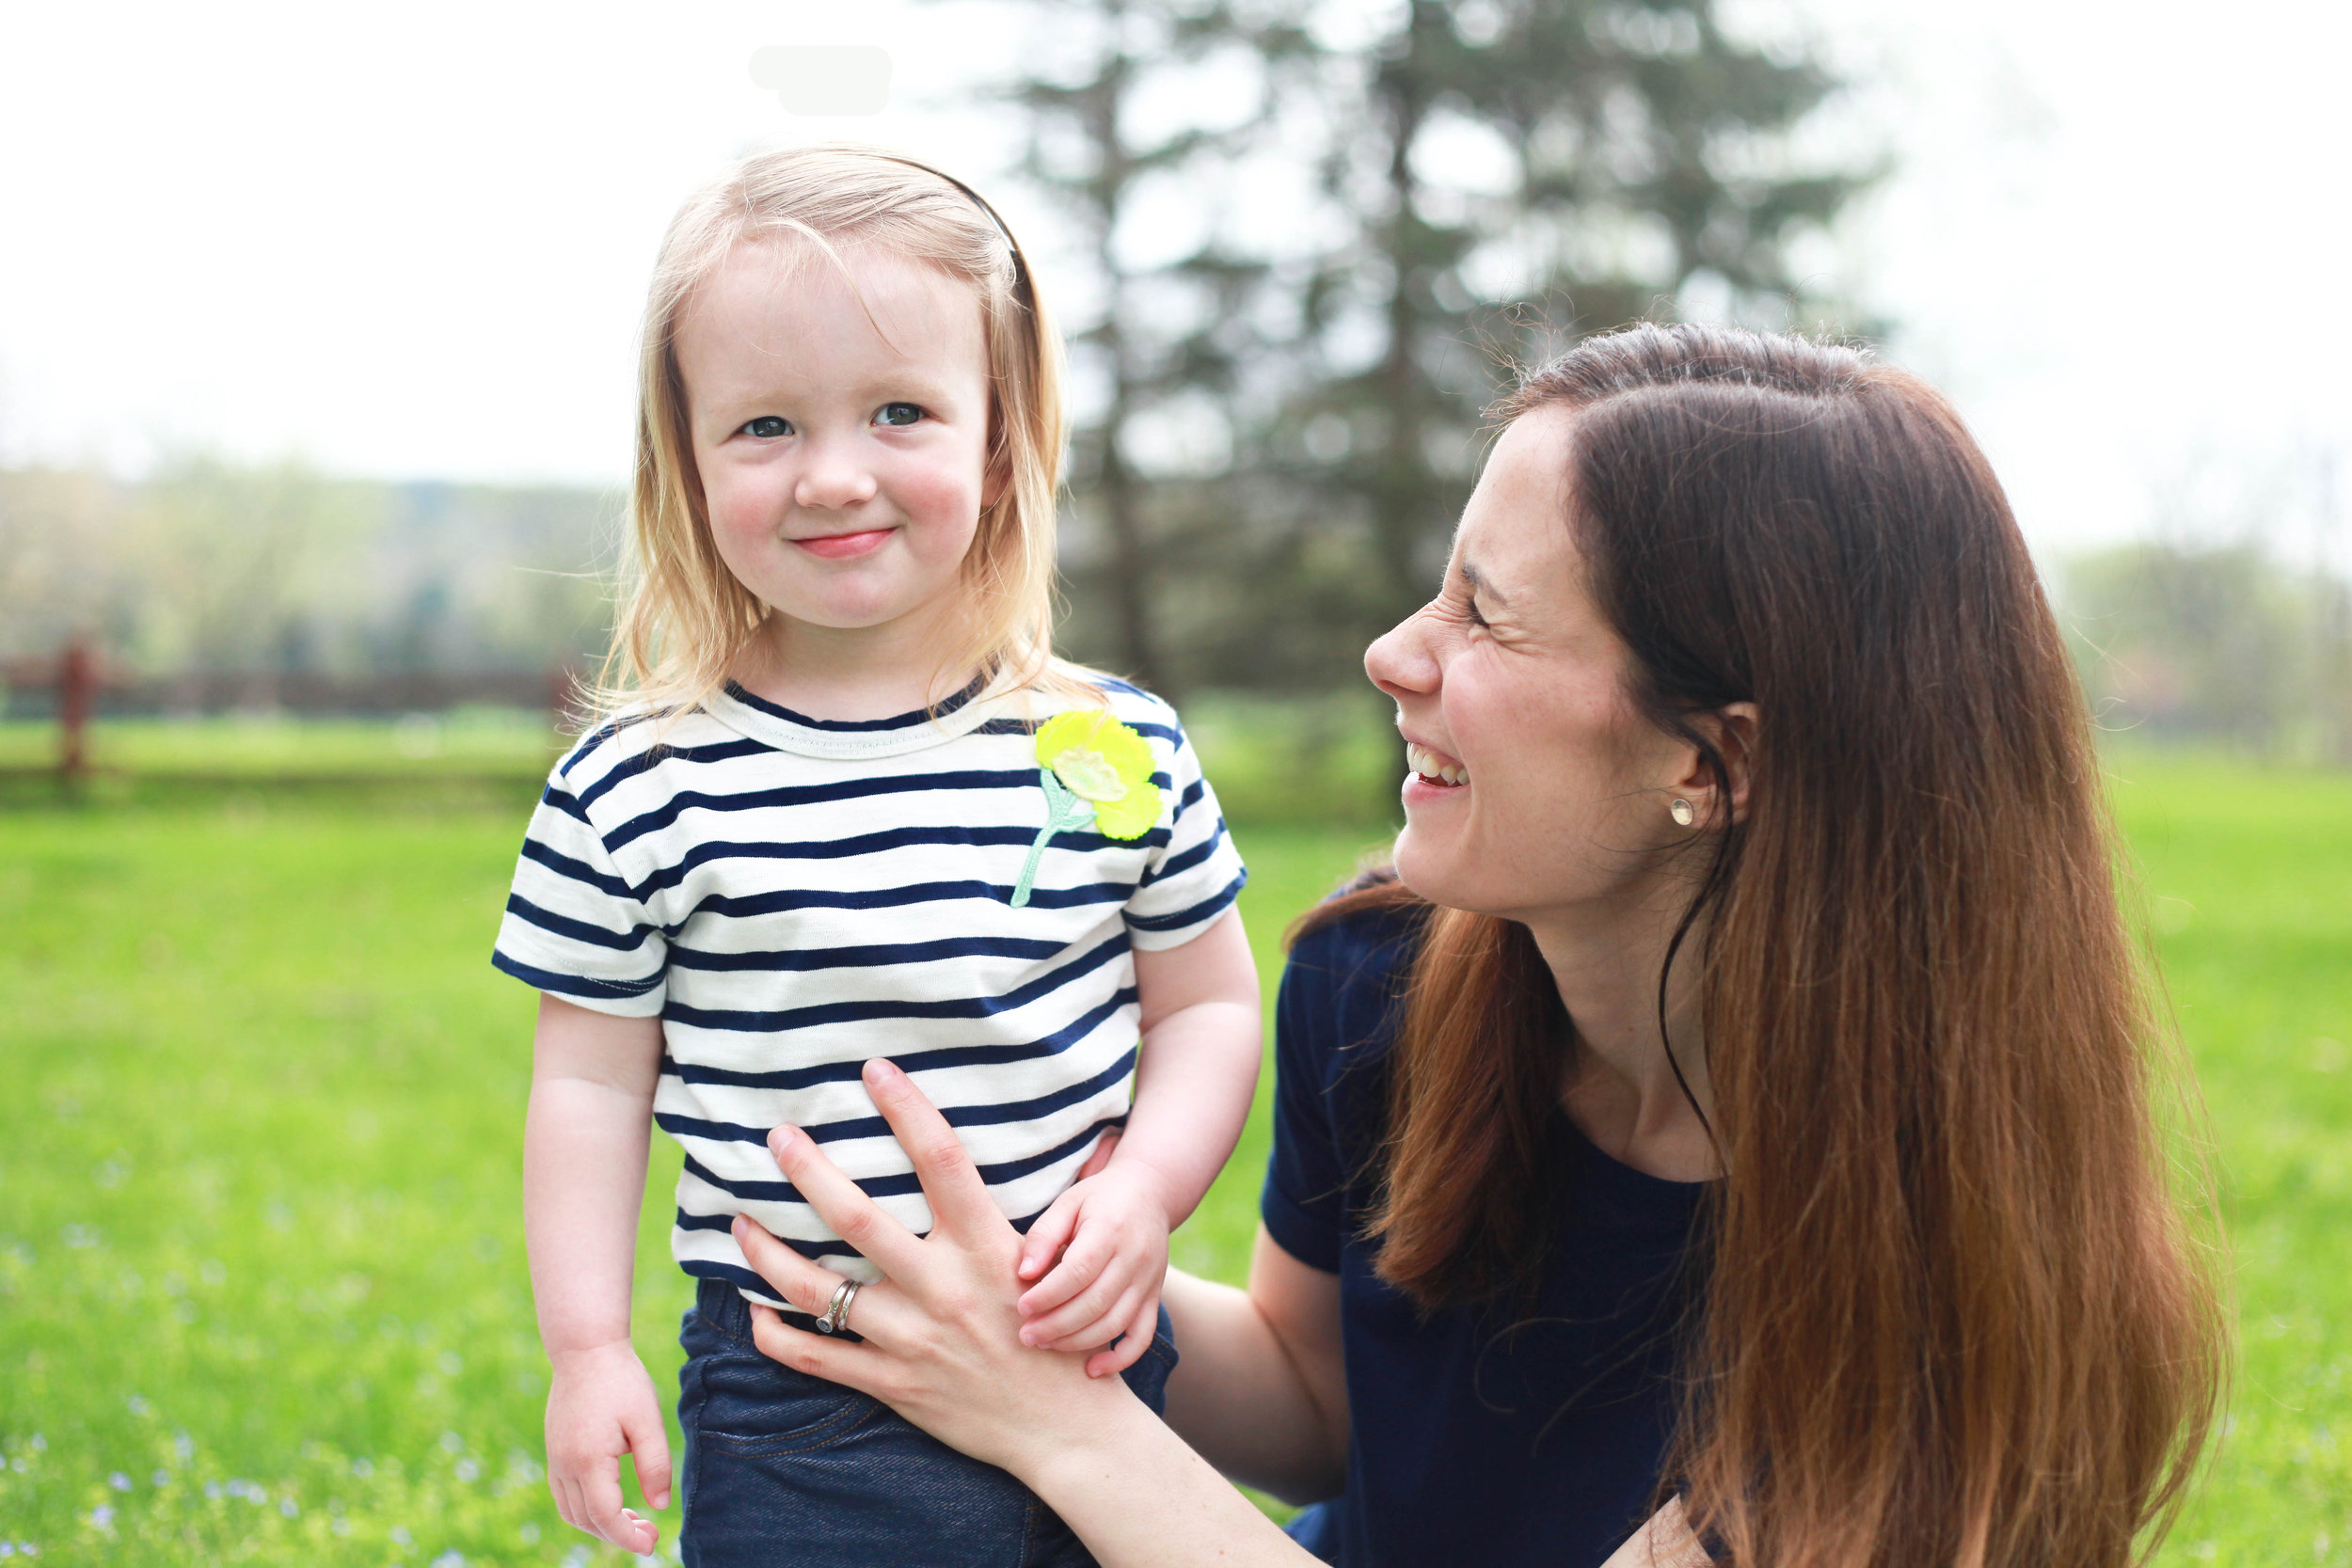 My daughter was shy at first, but Katie had lots of tricks to get her to come out of her shell.My daughter even said she missed Katie after the shoot was over! -